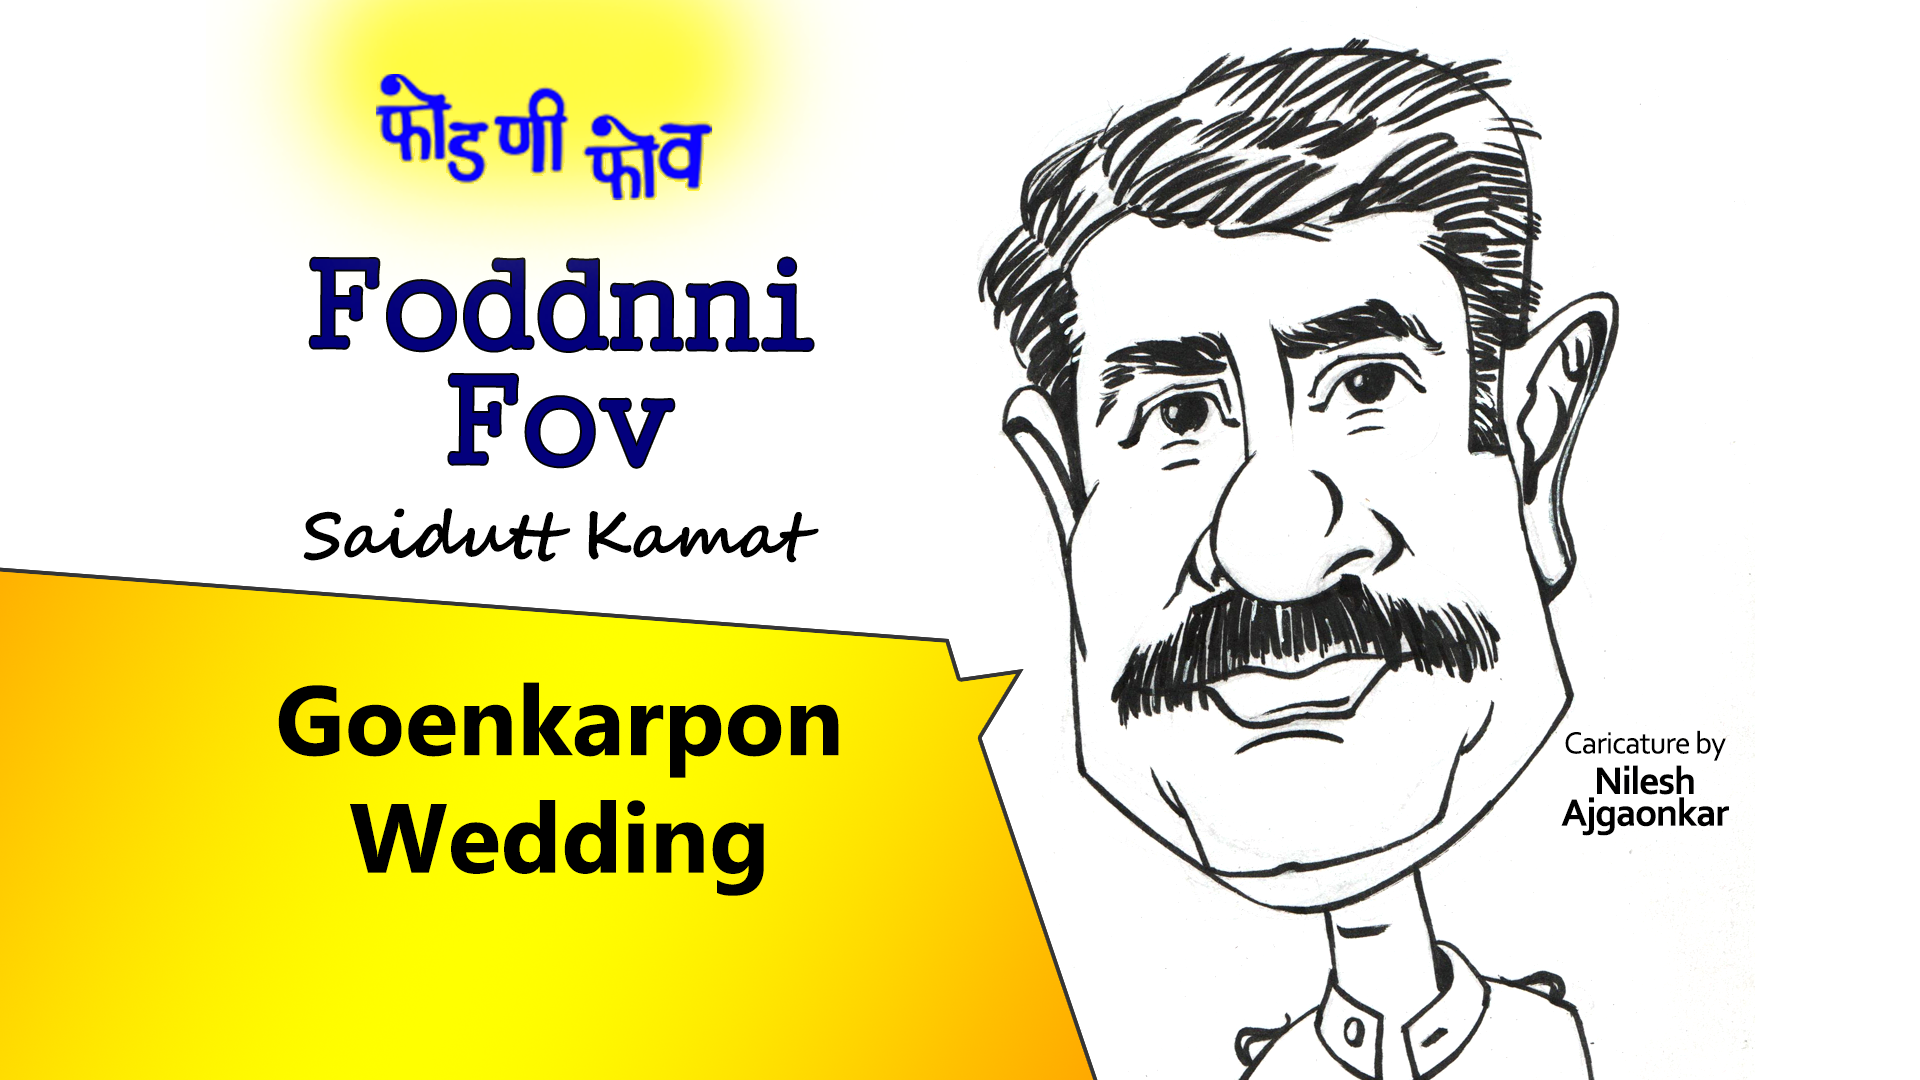 FODDNNI FOV : Goenkarpon Wedding